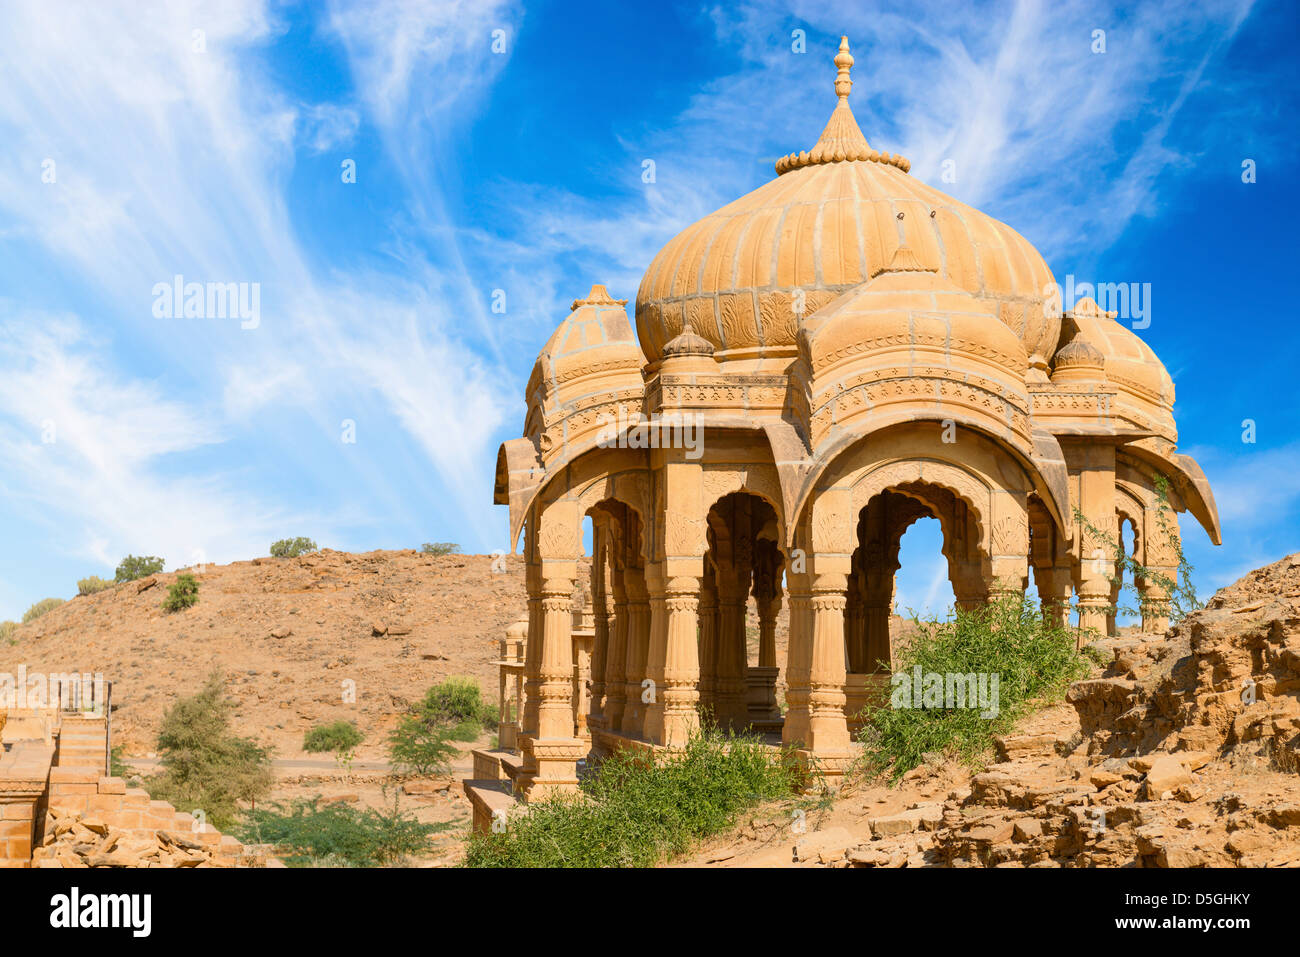 Chhatris on ruins of the royal cenotaphs of ancient Maharajas rulers in Bada Bagh, India - Stock Image